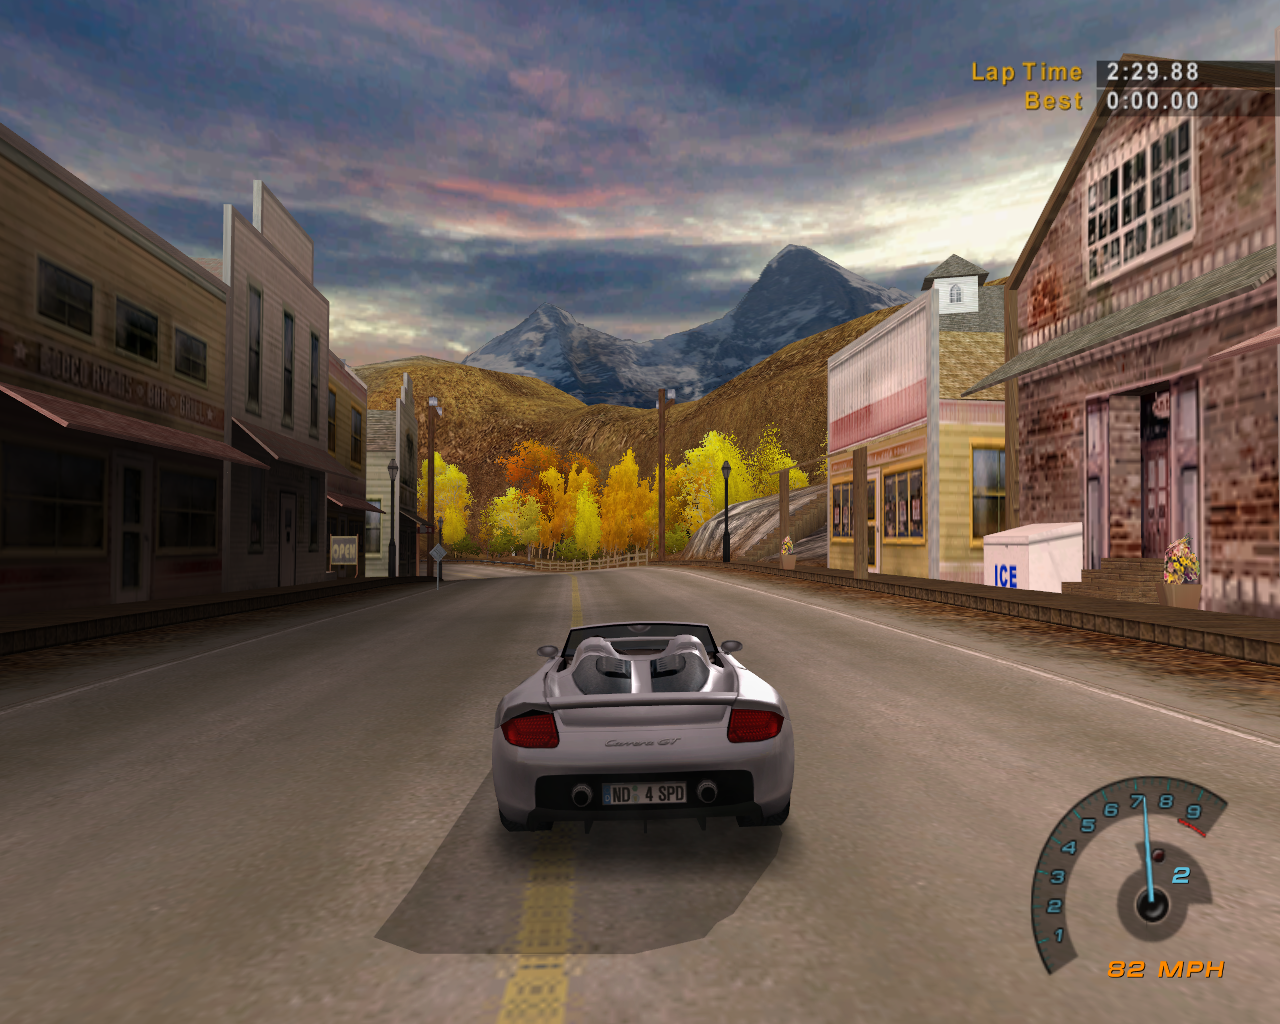 Another Staple Of A Need For Speed Gamethe Small Town To Drive Though With Gas Station That Dings When You Through It